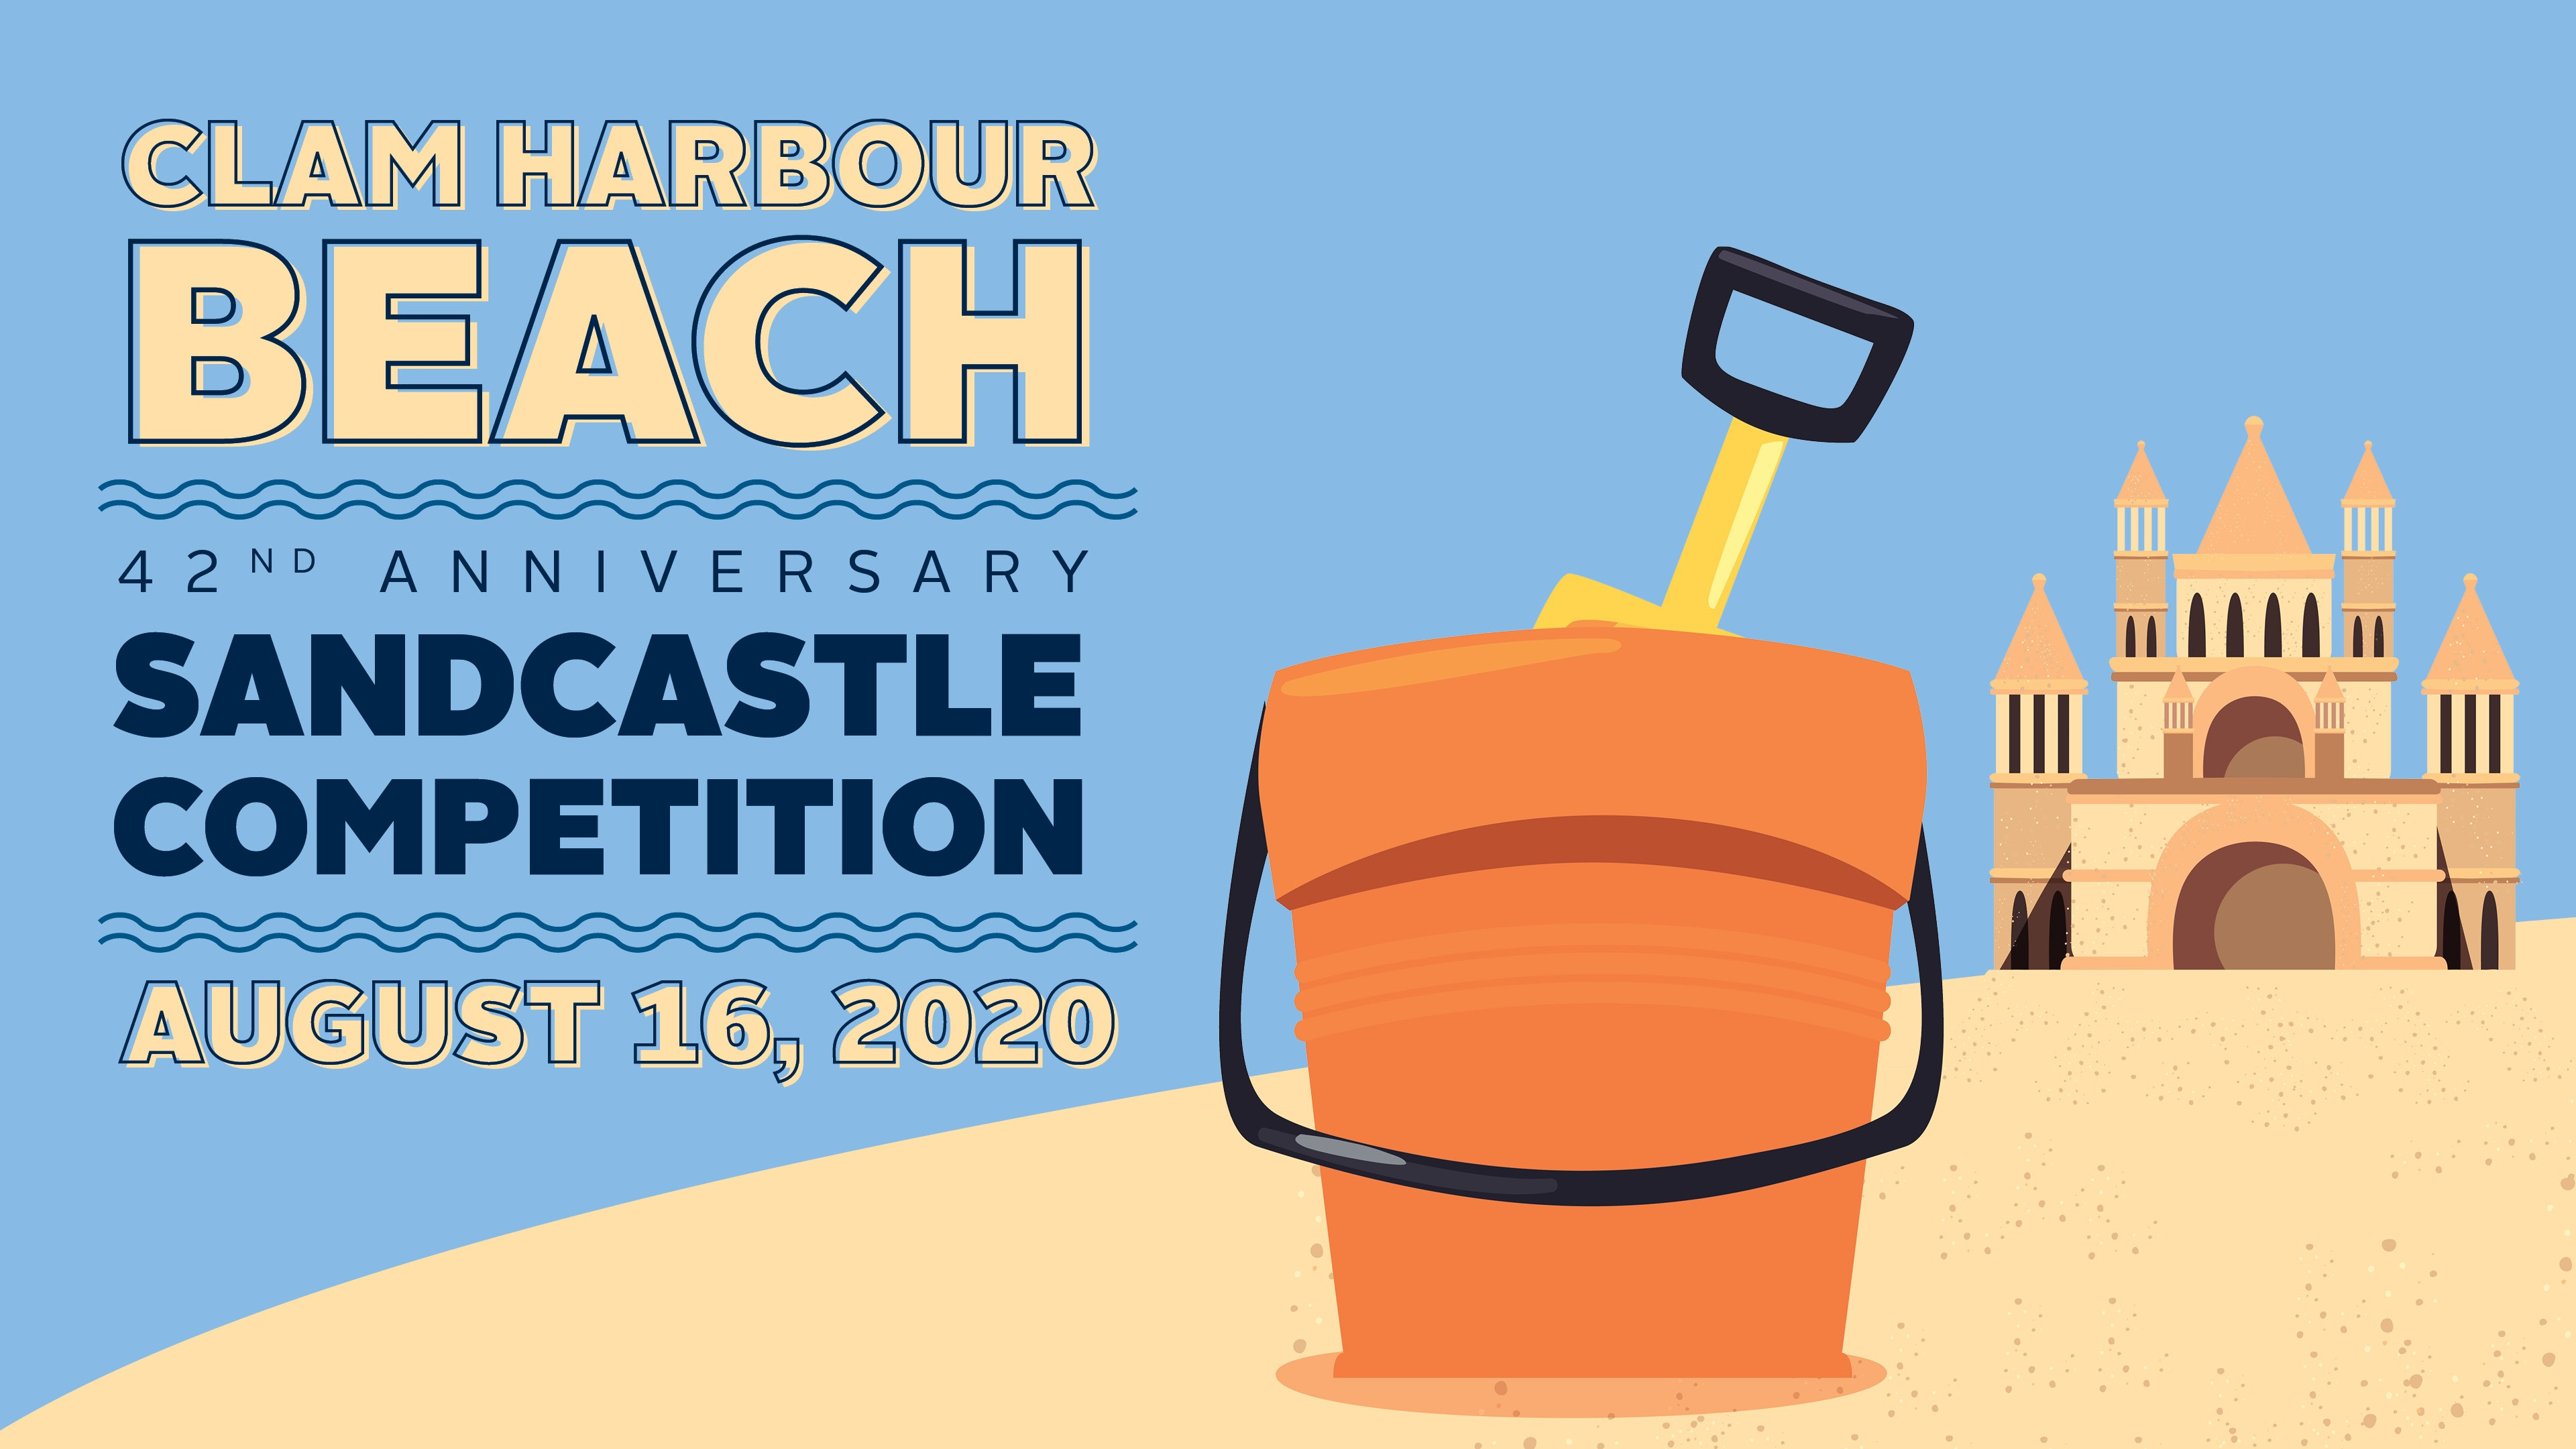 Clam Harbour Beach Sandcastle Competition logo graphic